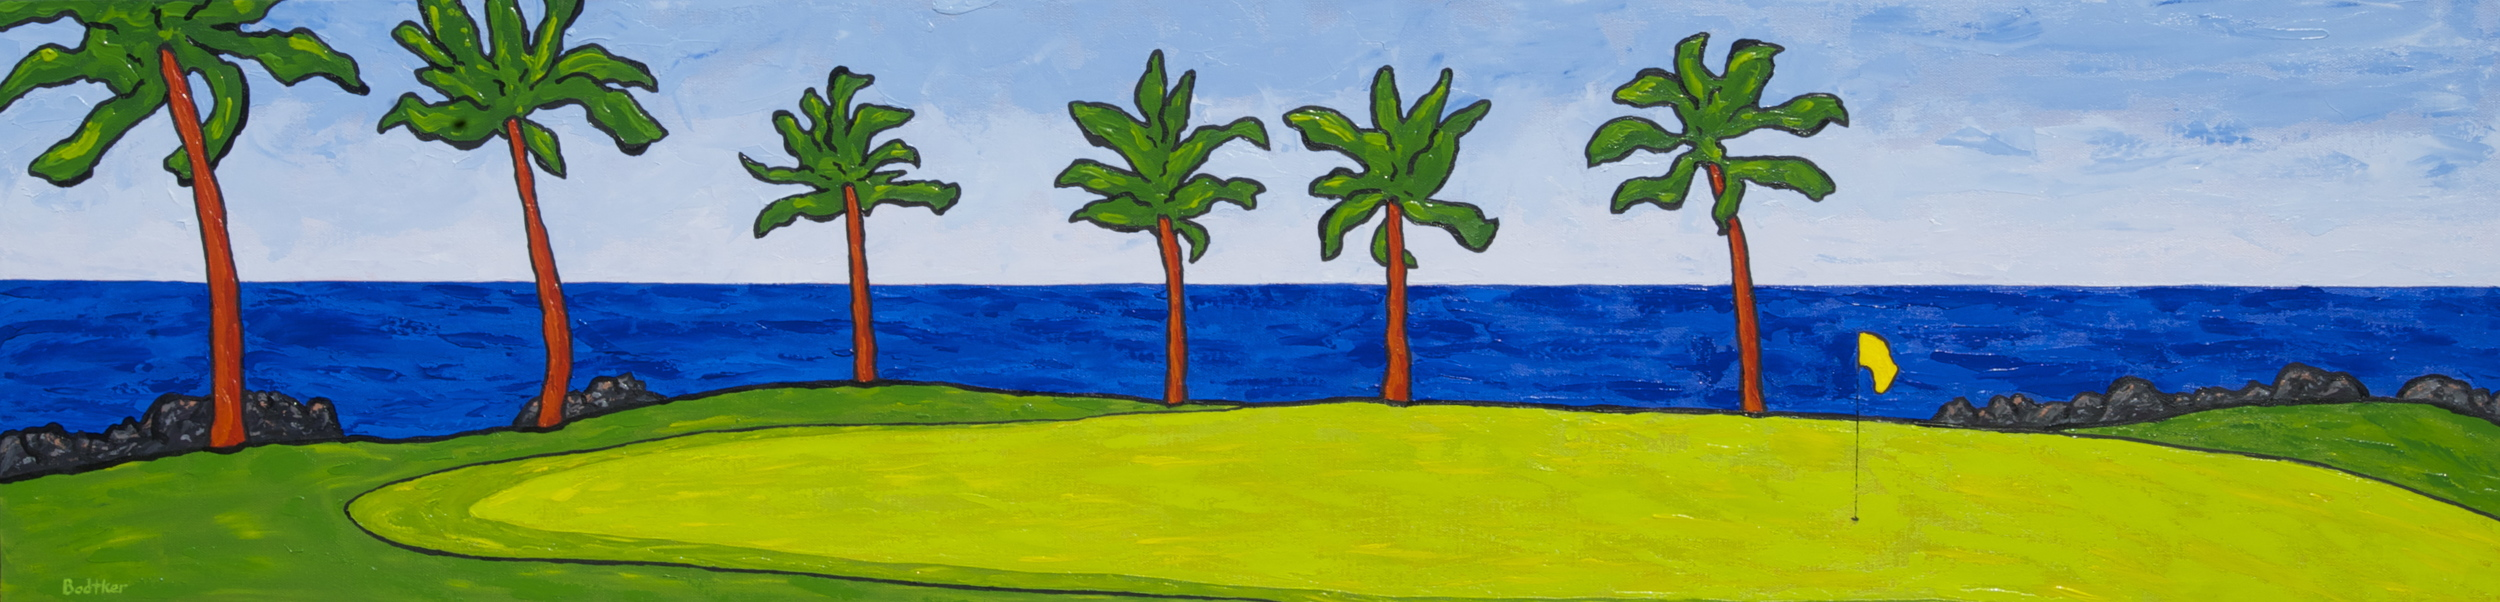 Eric Bodtker  Waikoloa Beach Course  12X48  Oil  SOLD